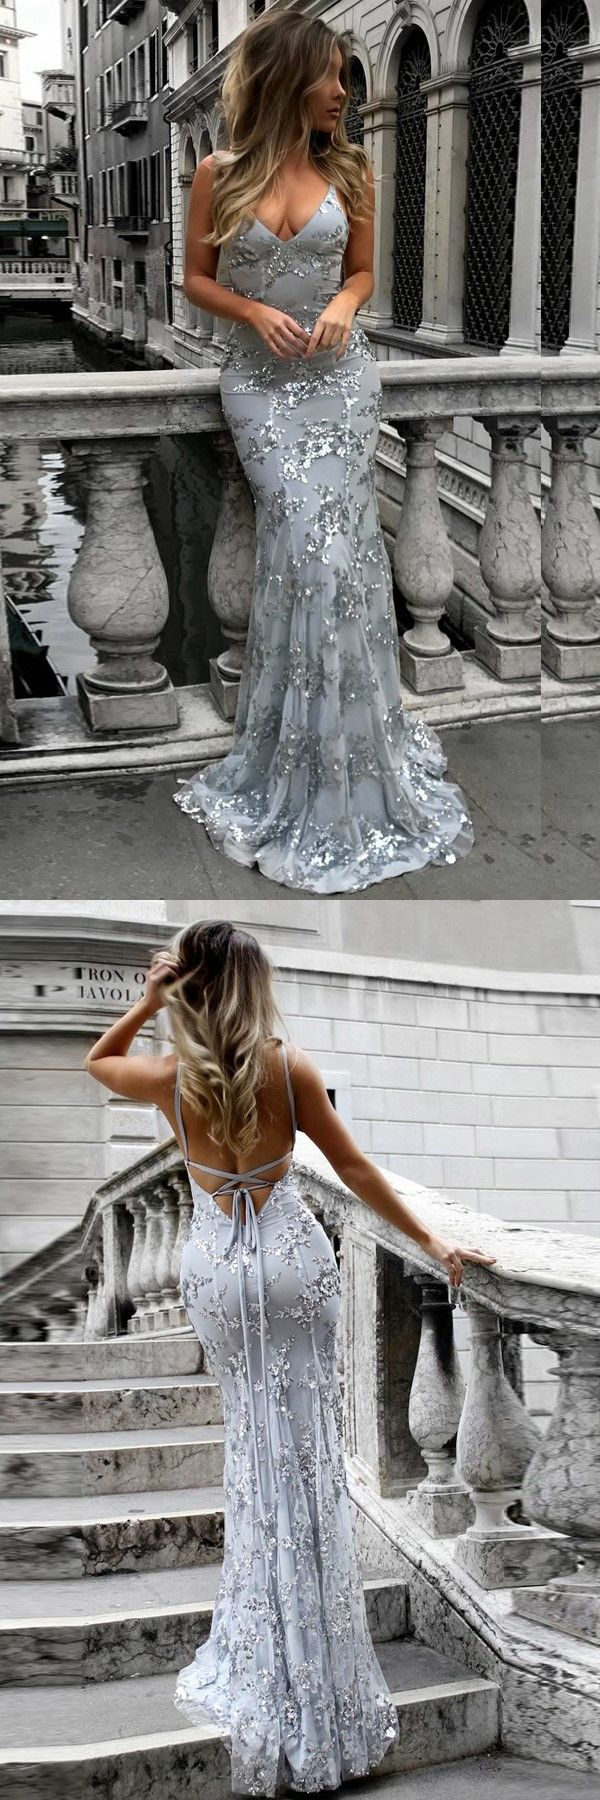 chic grey v-neck formal party dresses, elegant beaded mermaid prom dresses.